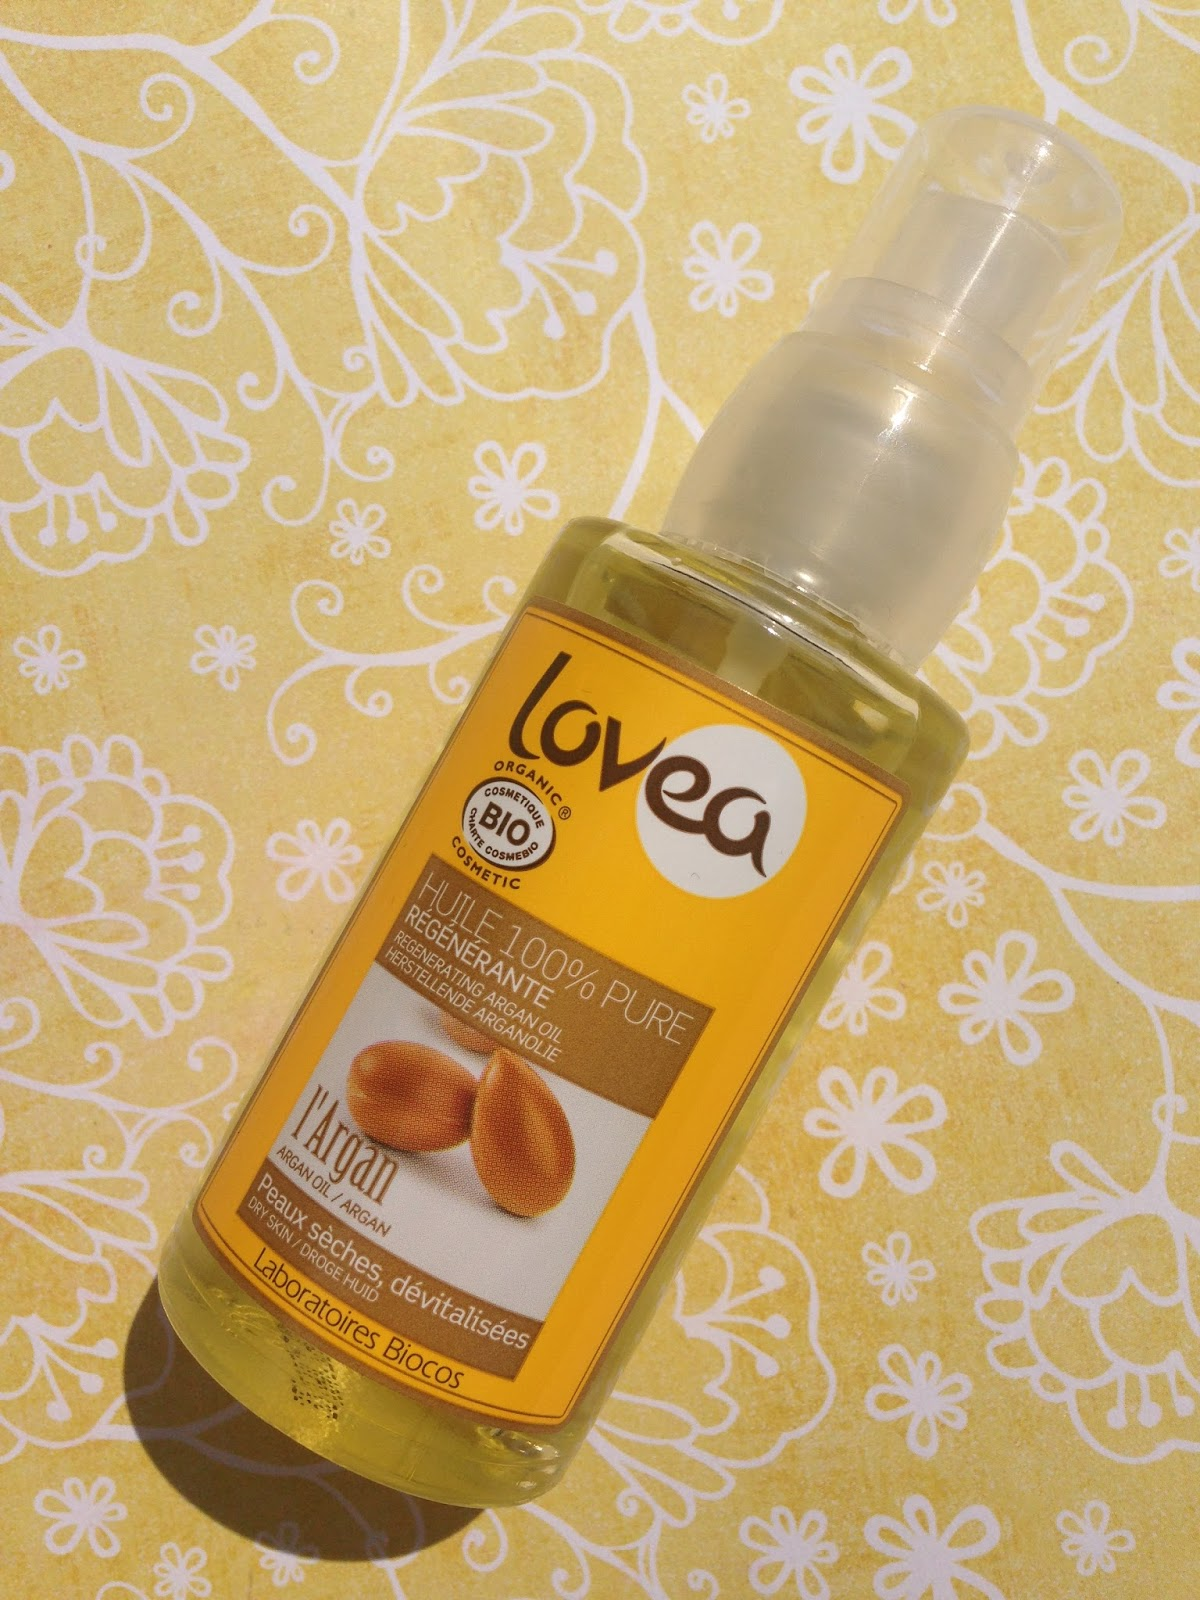 Lovea, Argan Oil, My Pure